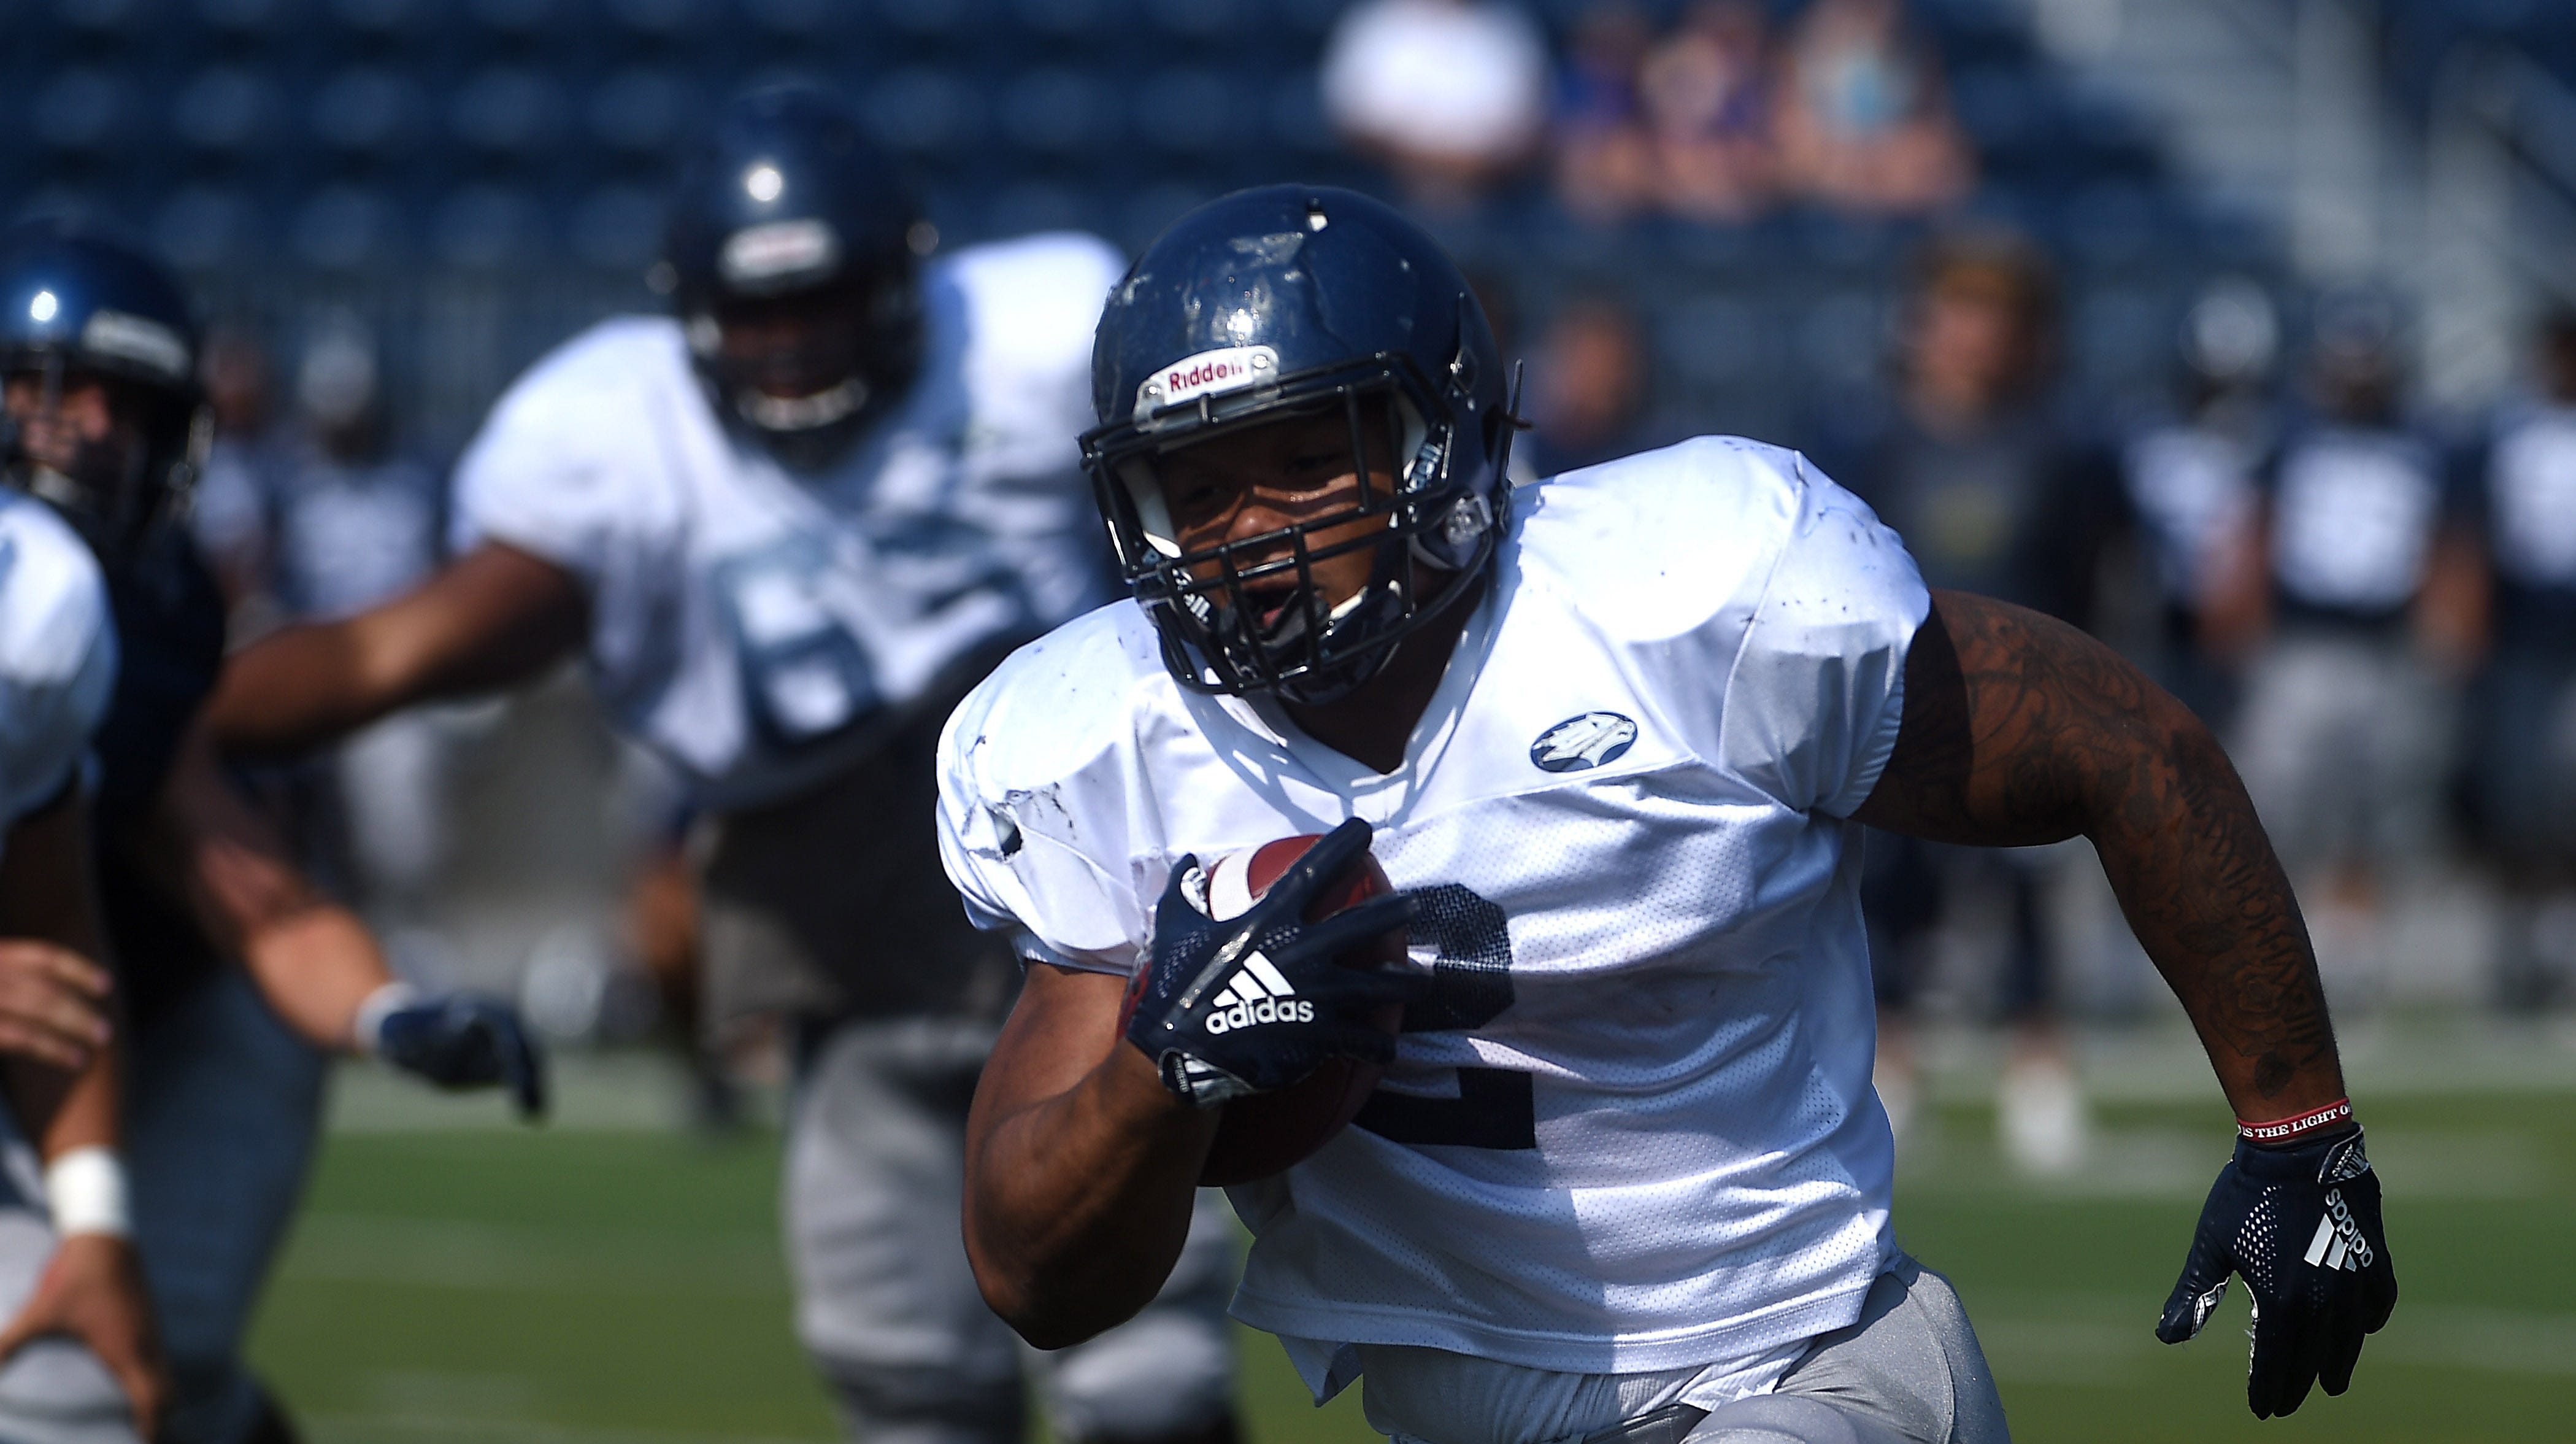 Running back Devonte Lee breaks free for a big gain during Nevada football's scrimmage Saturday at Mackay Stadium.